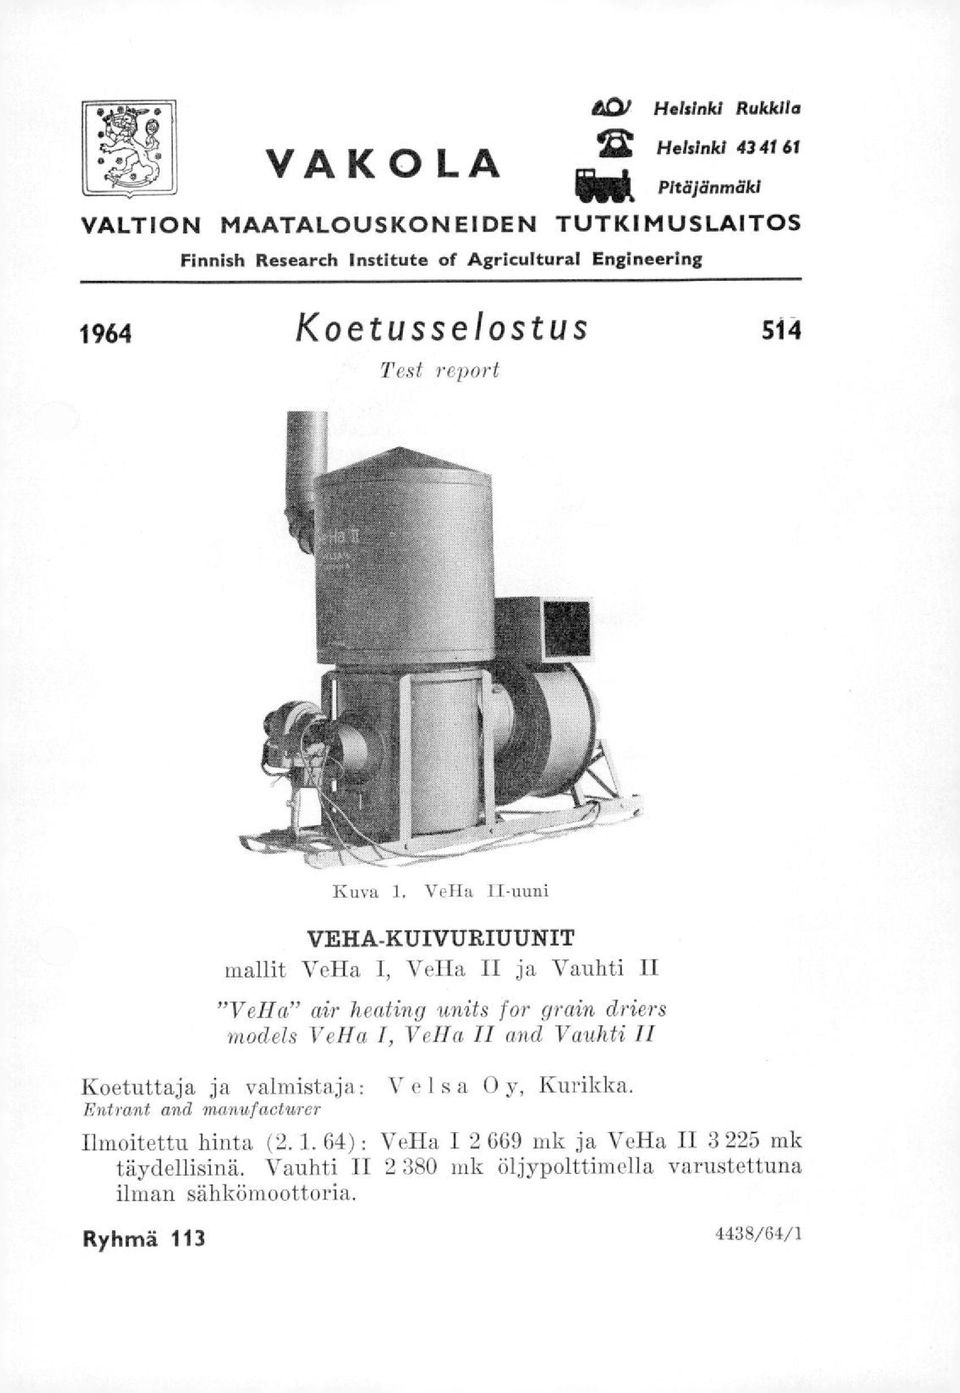 "Vella II-uuni VEHA-KUIVURIUUNIT mallit VeHa 1, VeHa II ja Vauhti II ""VeHa"" air heating units for grain driers models VeHa 1, VeHa II and Vauhti Ii"